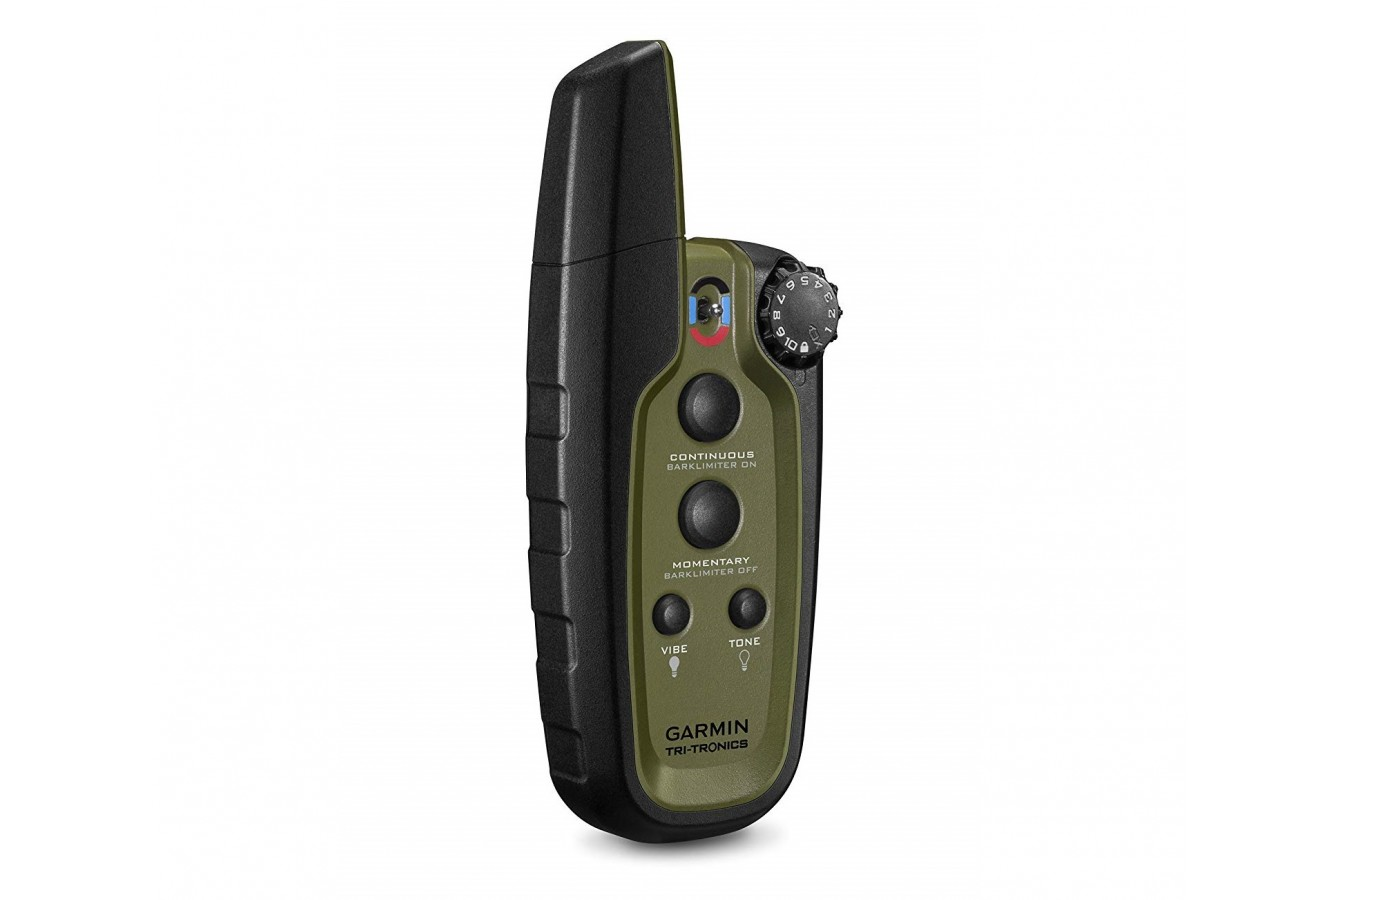 The Garmin Sport Pro offers a four button remote control that offers multi-dog training capabilities.